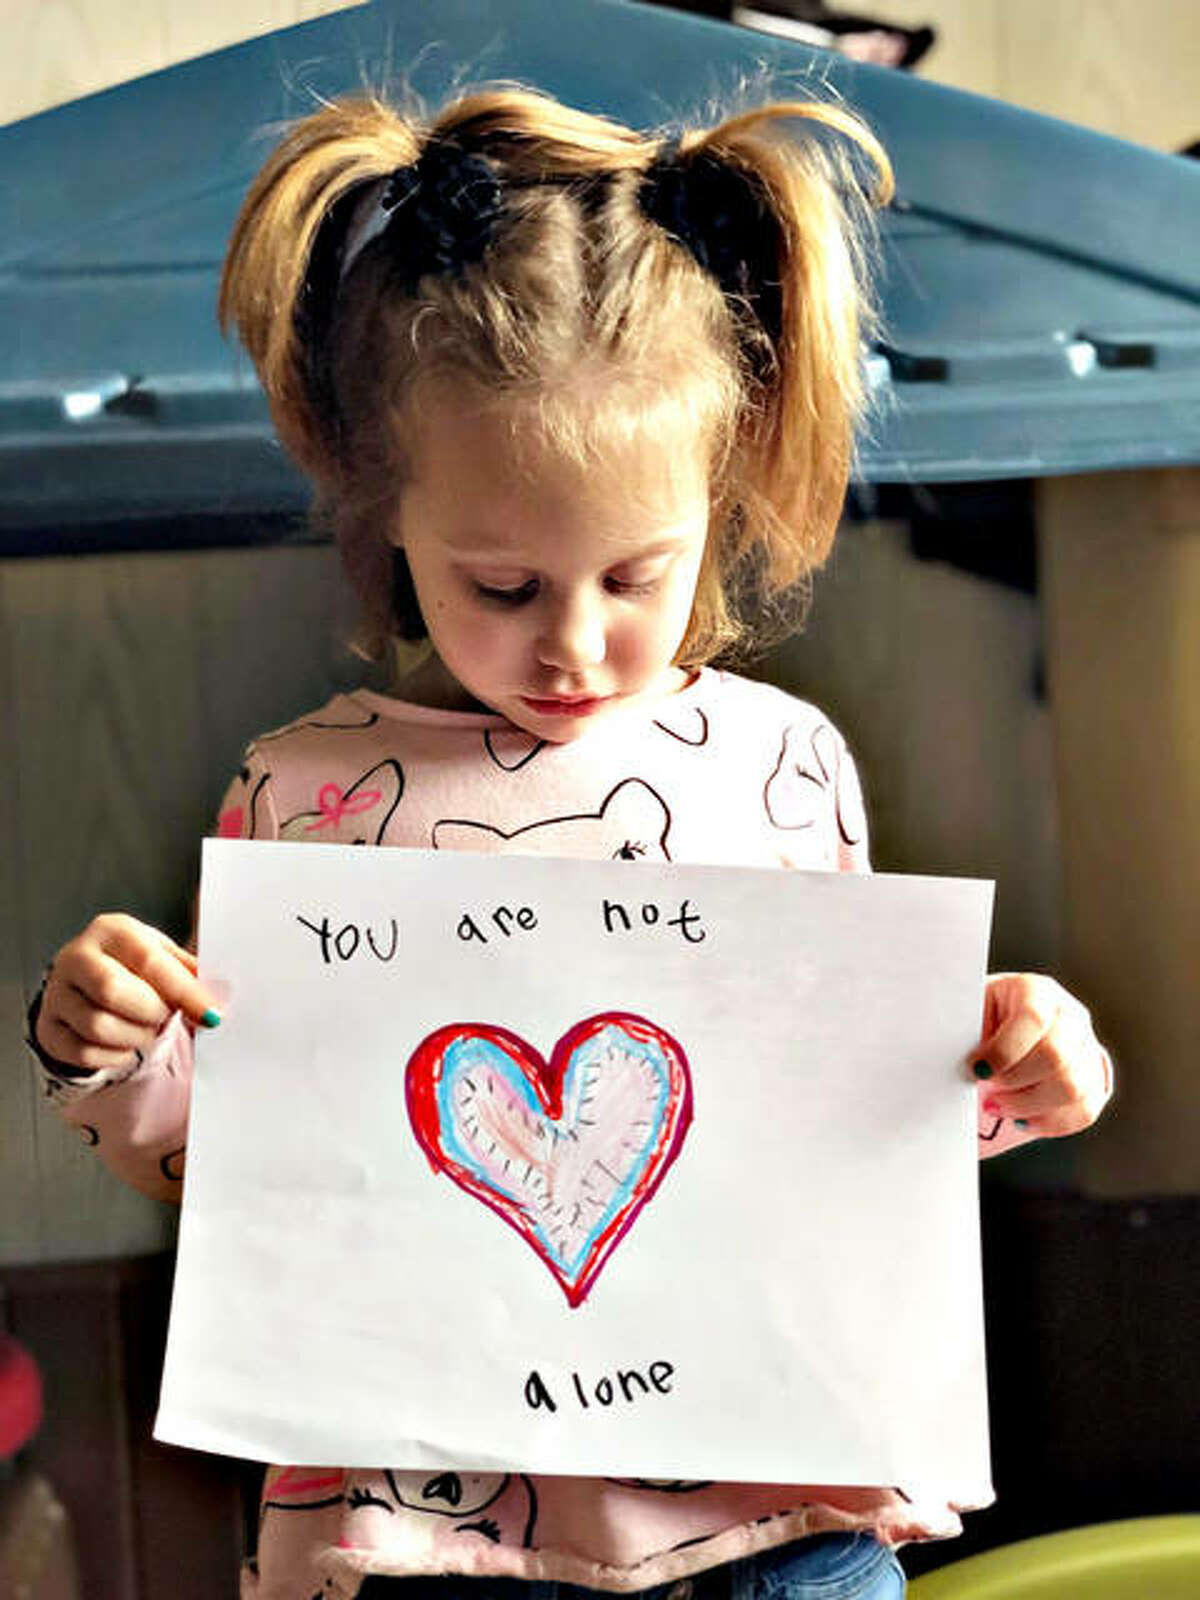 Matilda Kassel poses with one her heartfelt replies. She contines creating art and sending messages of positivity to people who need cheering up.